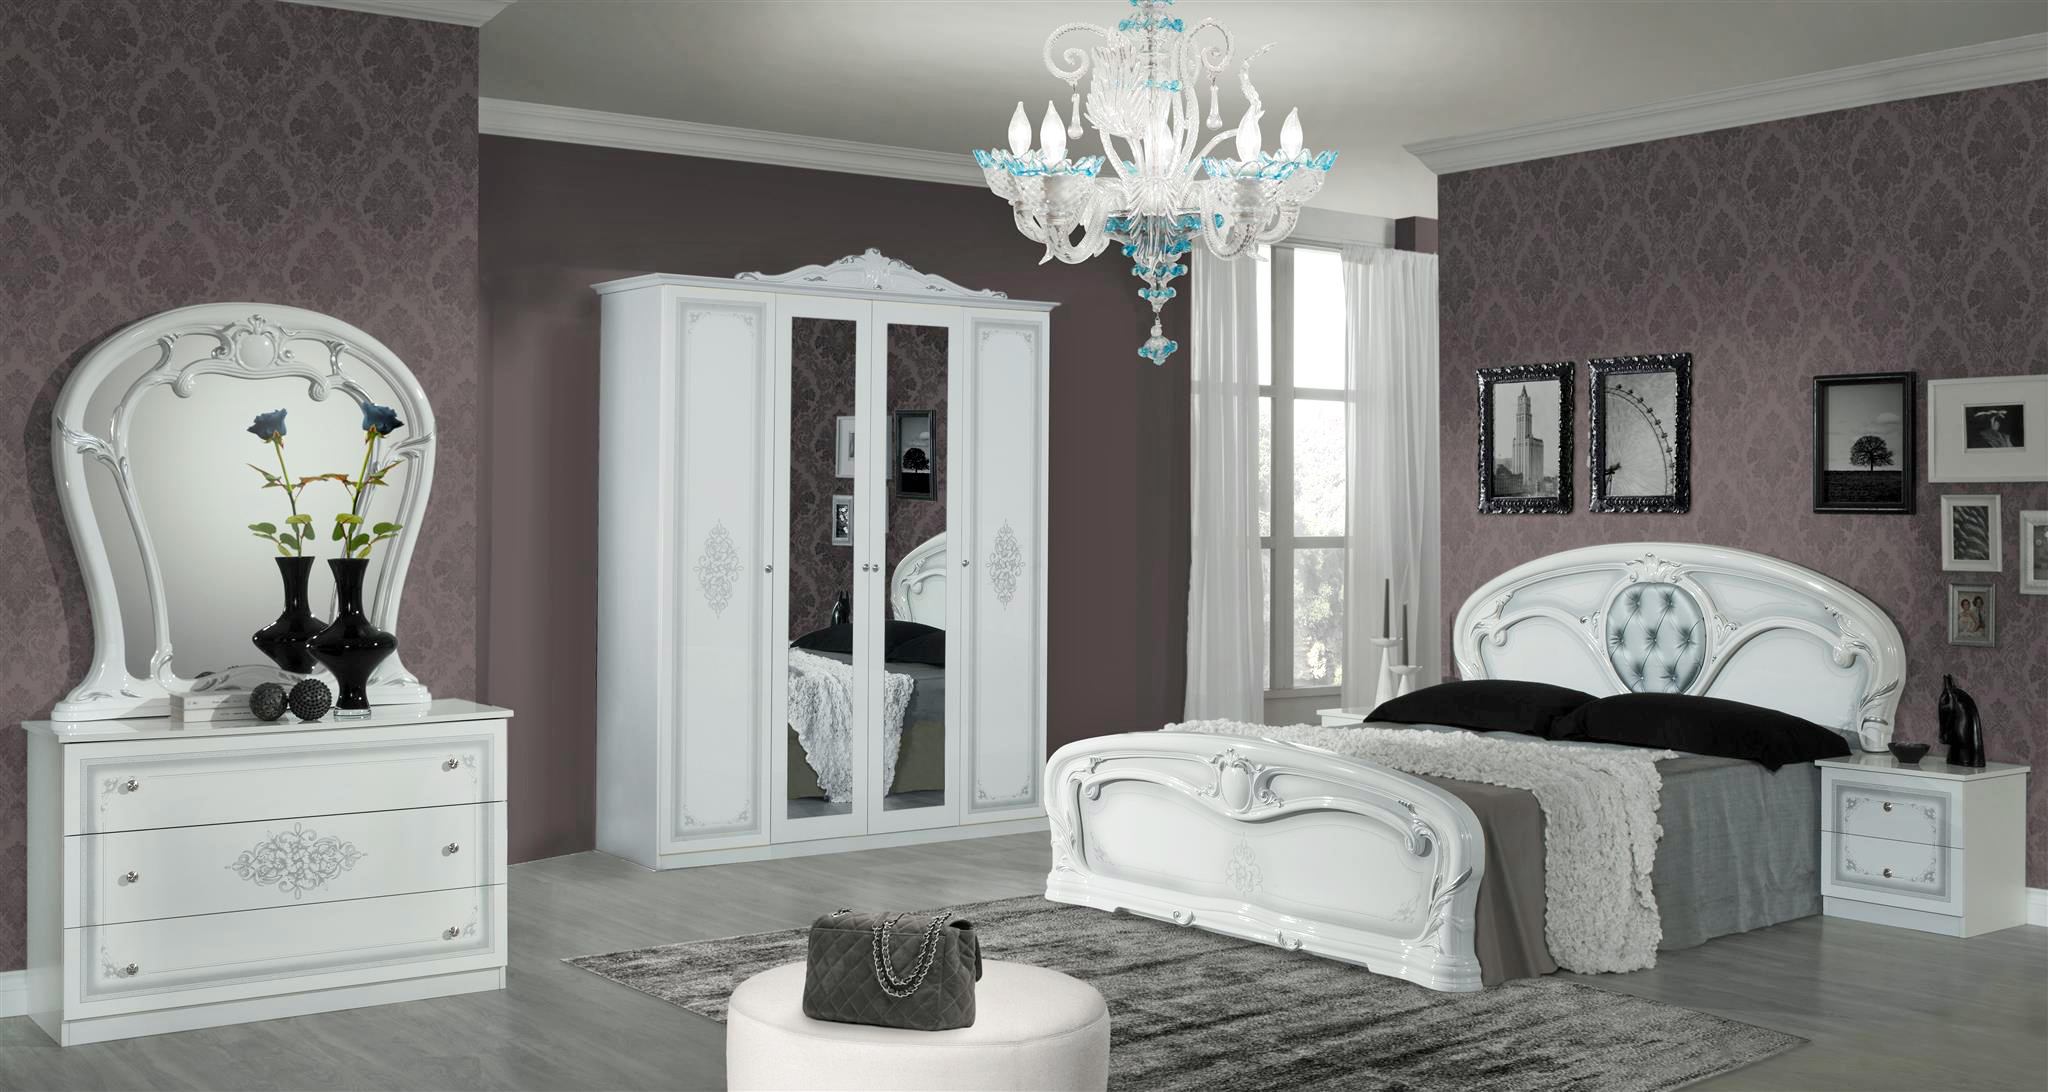 klassisches bett barock bett. Black Bedroom Furniture Sets. Home Design Ideas